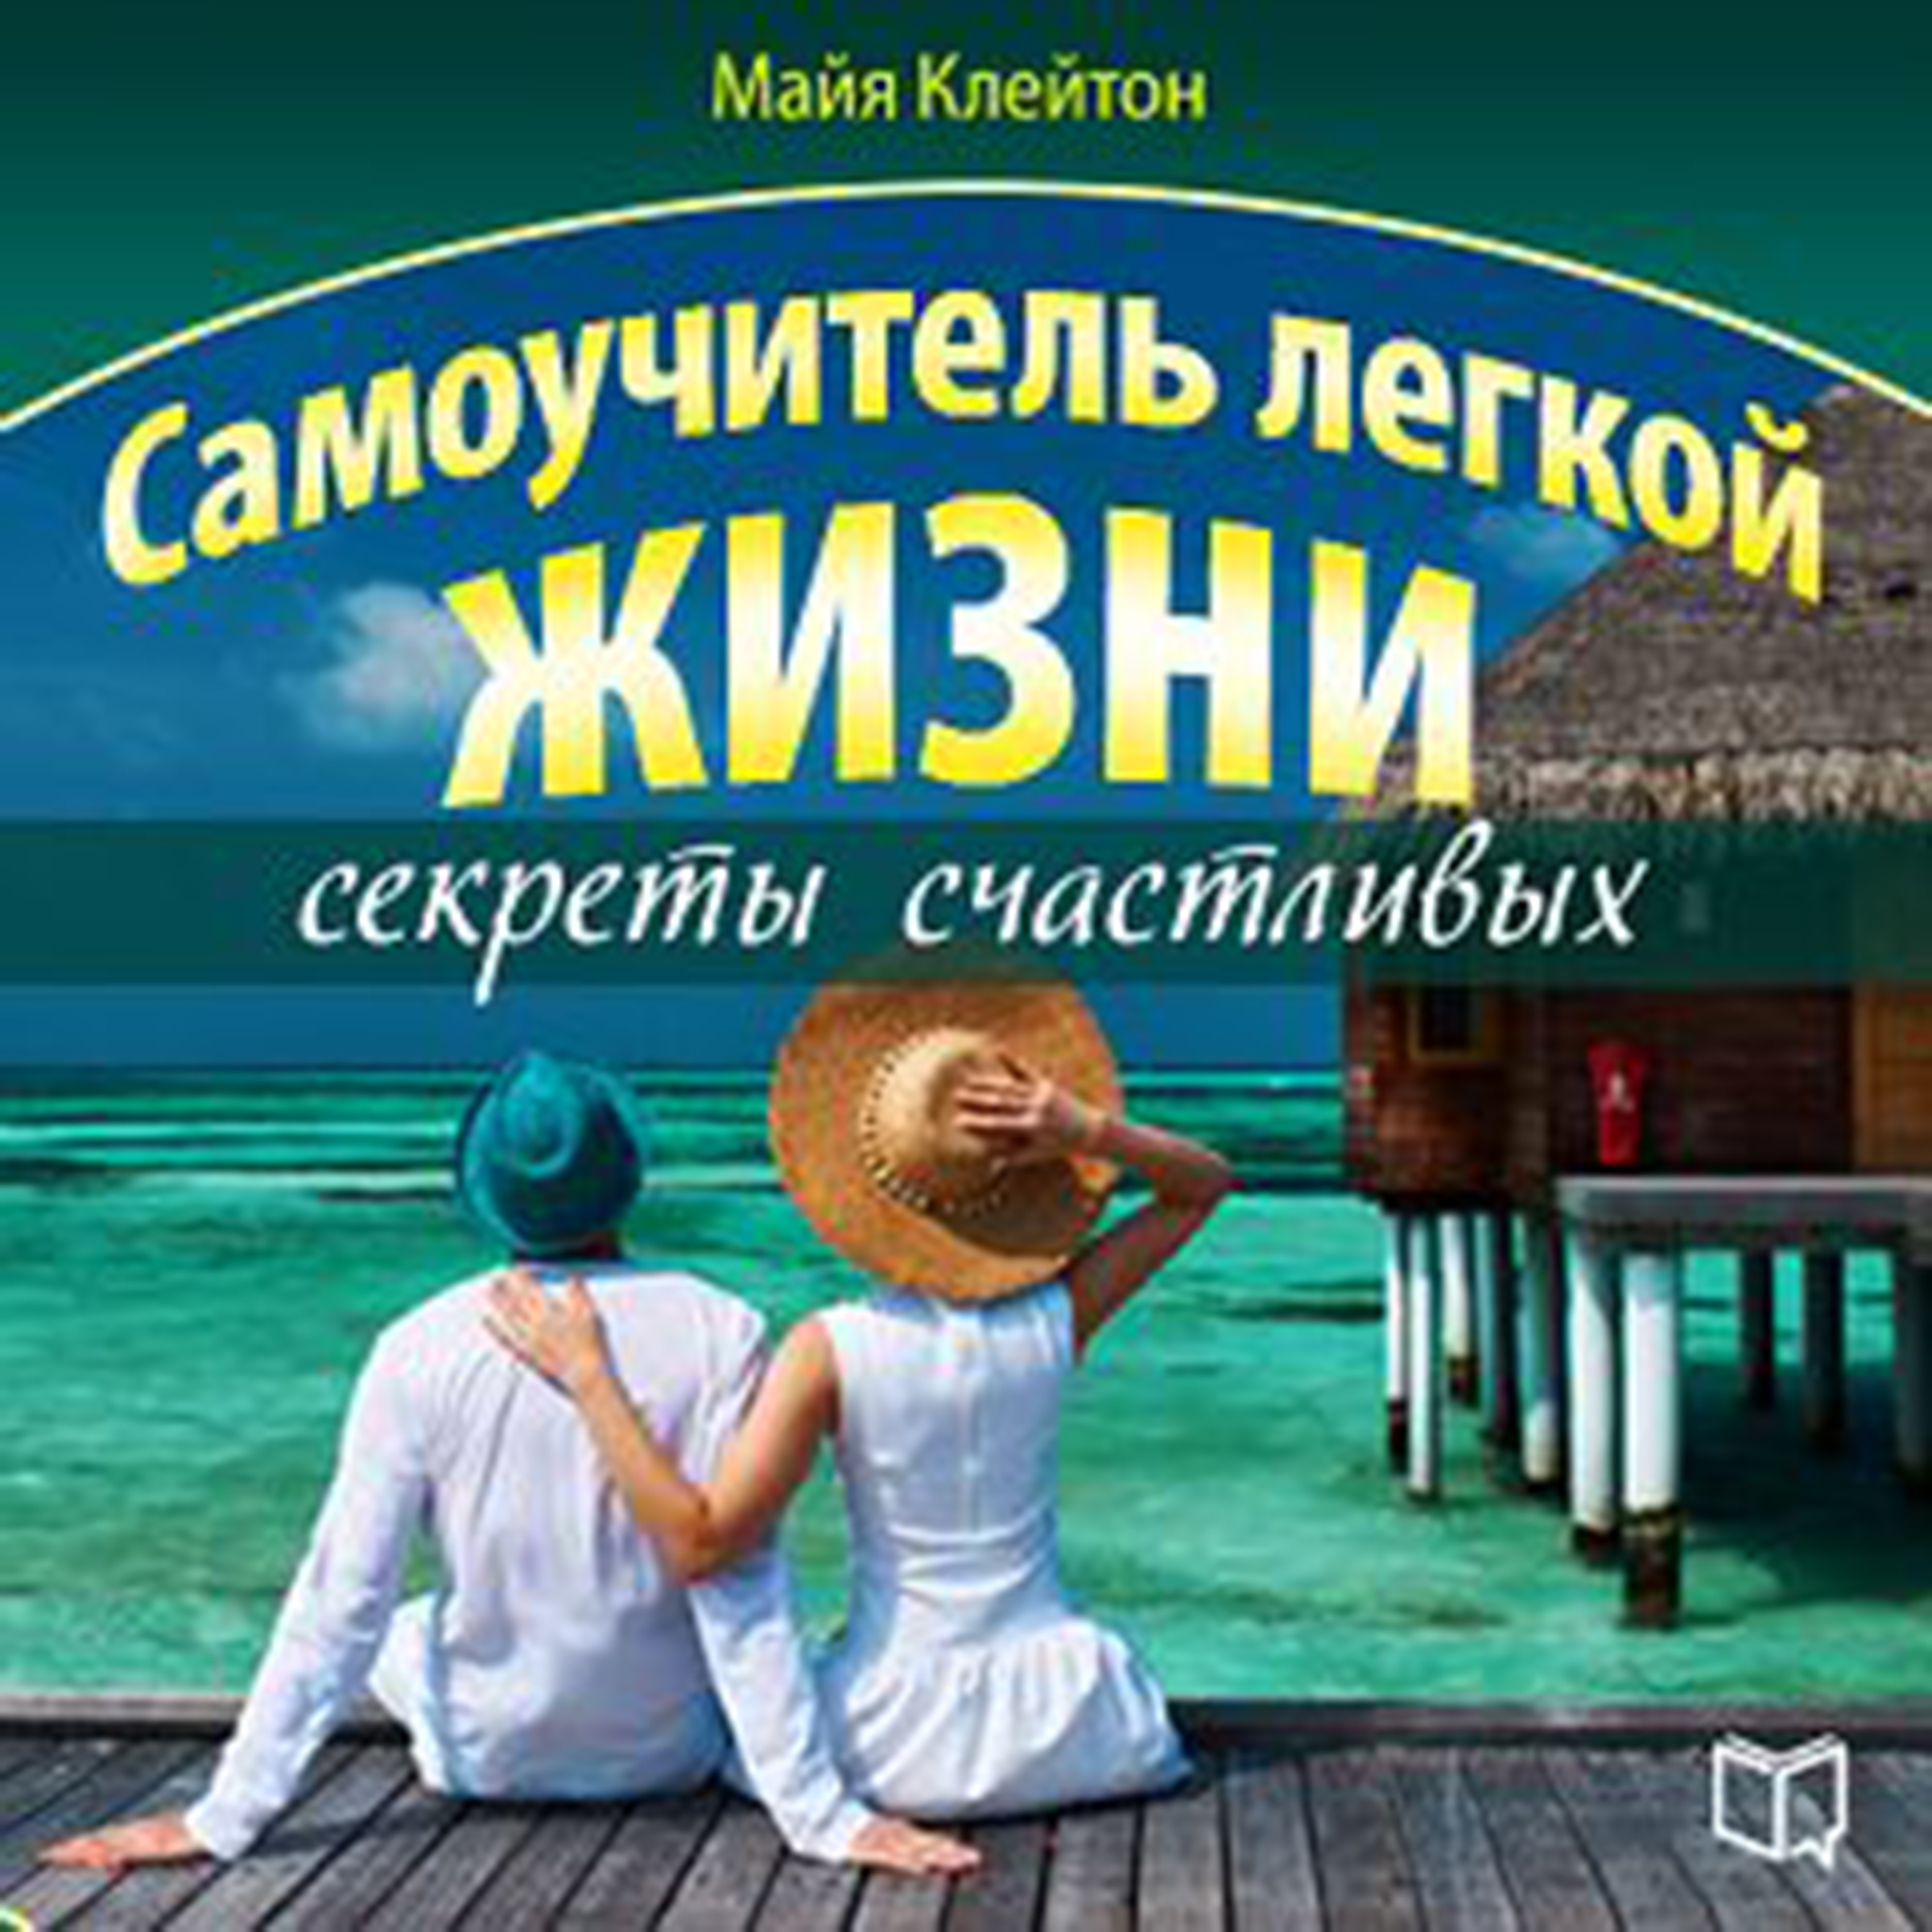 Printable Guide of easy life: the secrets of happiness [Russian Edition] Audiobook Cover Art